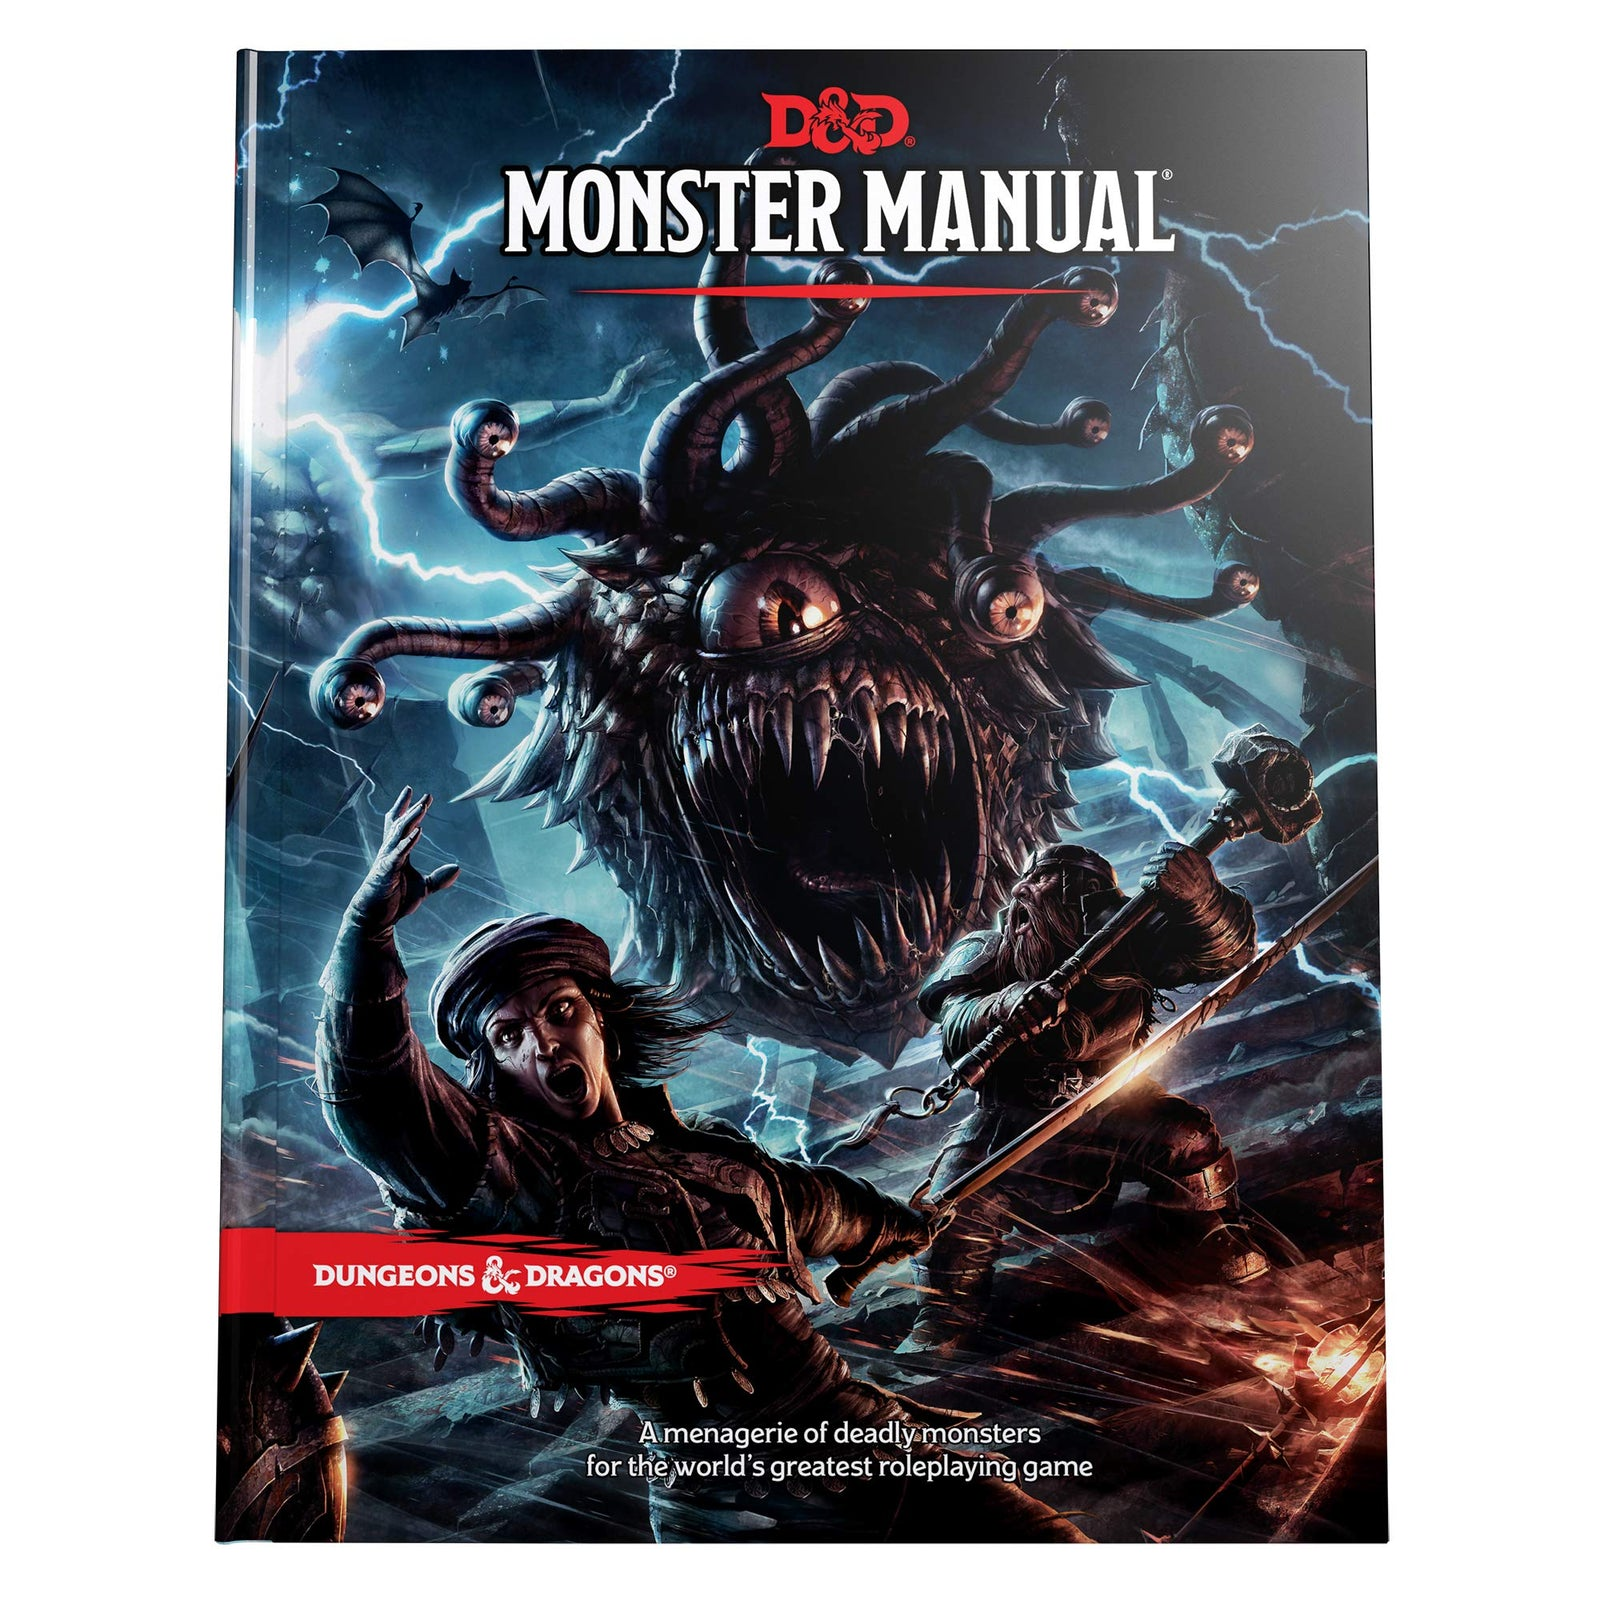 Dungeons and Dragons Monster Manual - The Sword & Board